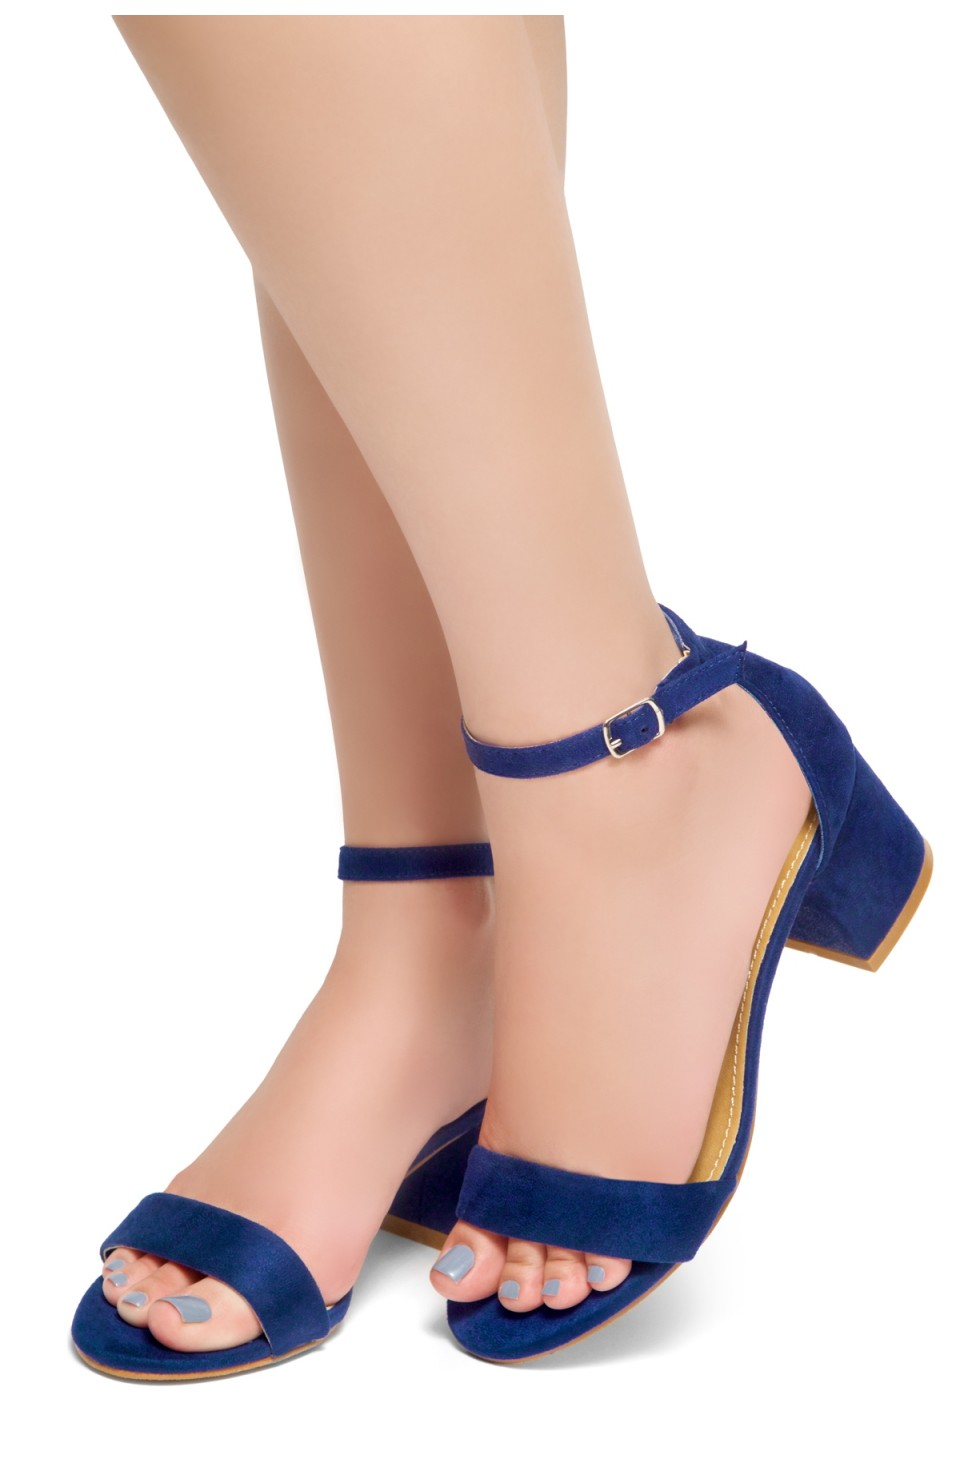 HerStyle Mischa - an open toe, block heel,ankle strap with an adjustable buckle (RoaylBlue)